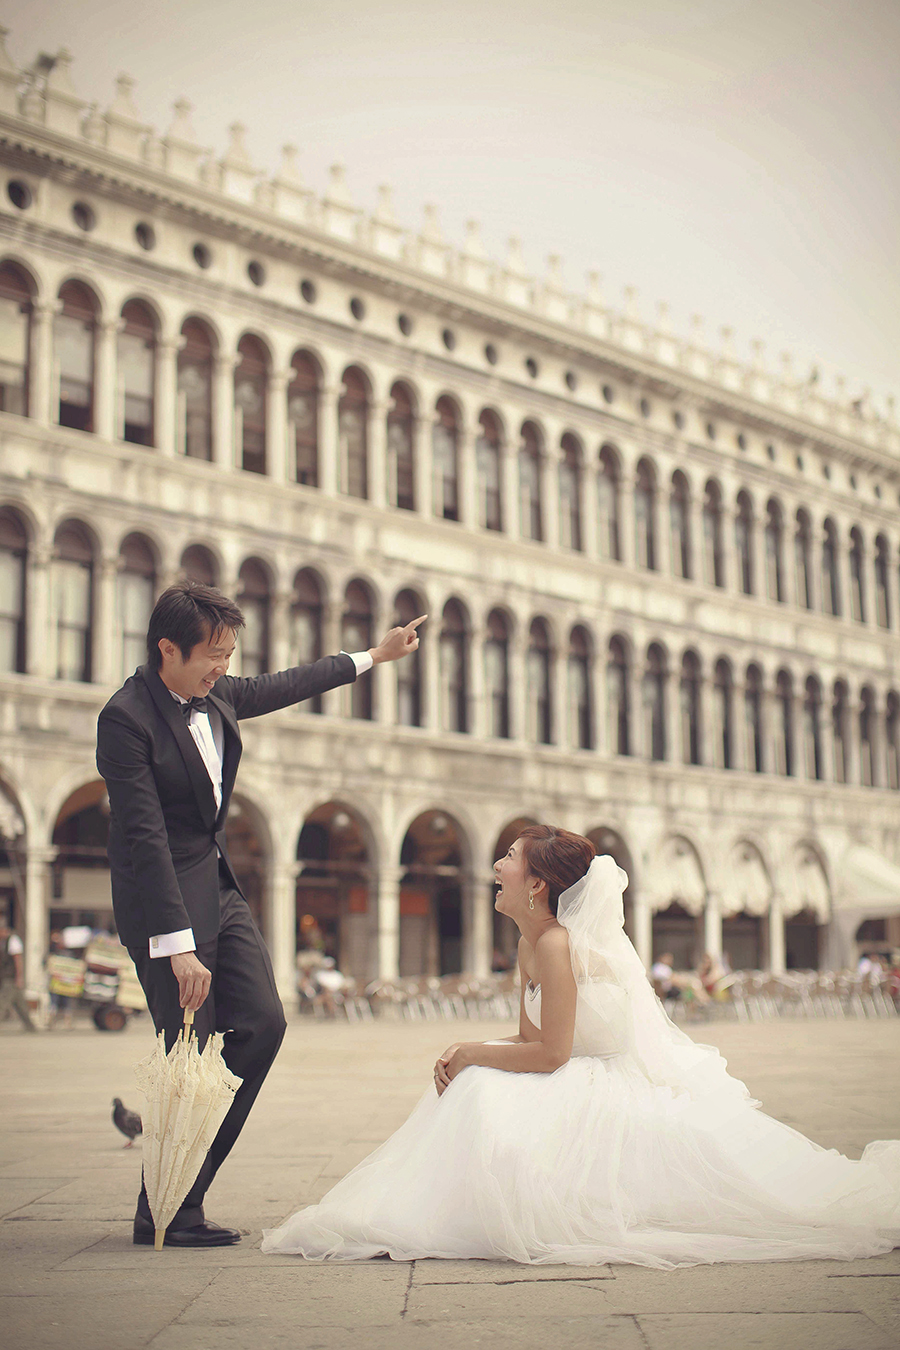 venice italy . wedding photography by kurt ahs . 05382.jpg